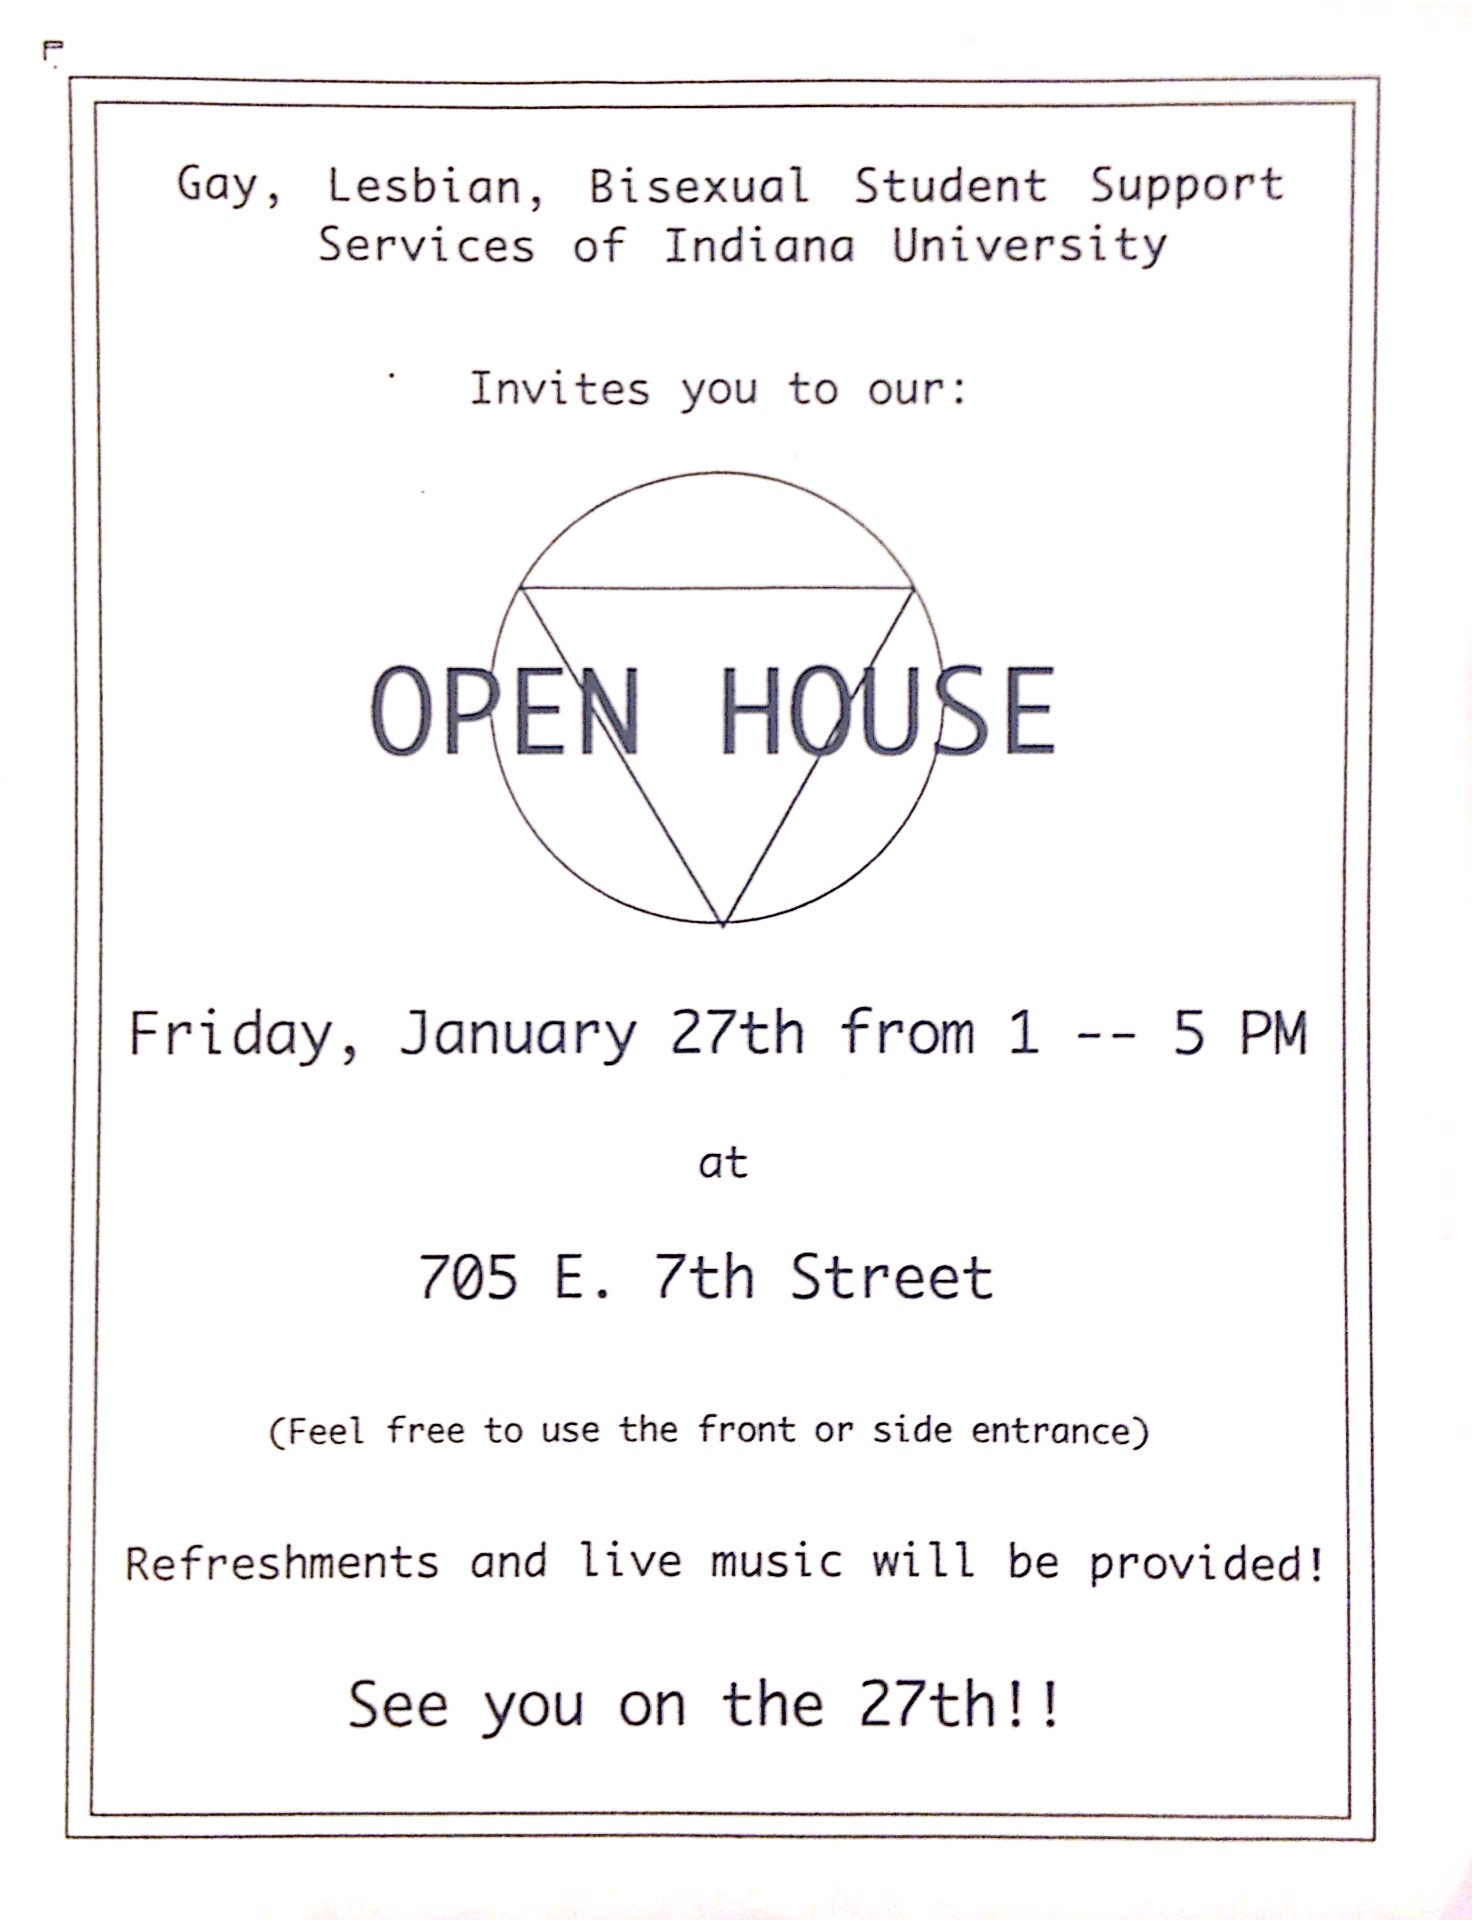 GLBSSS Open House Poster from 1995